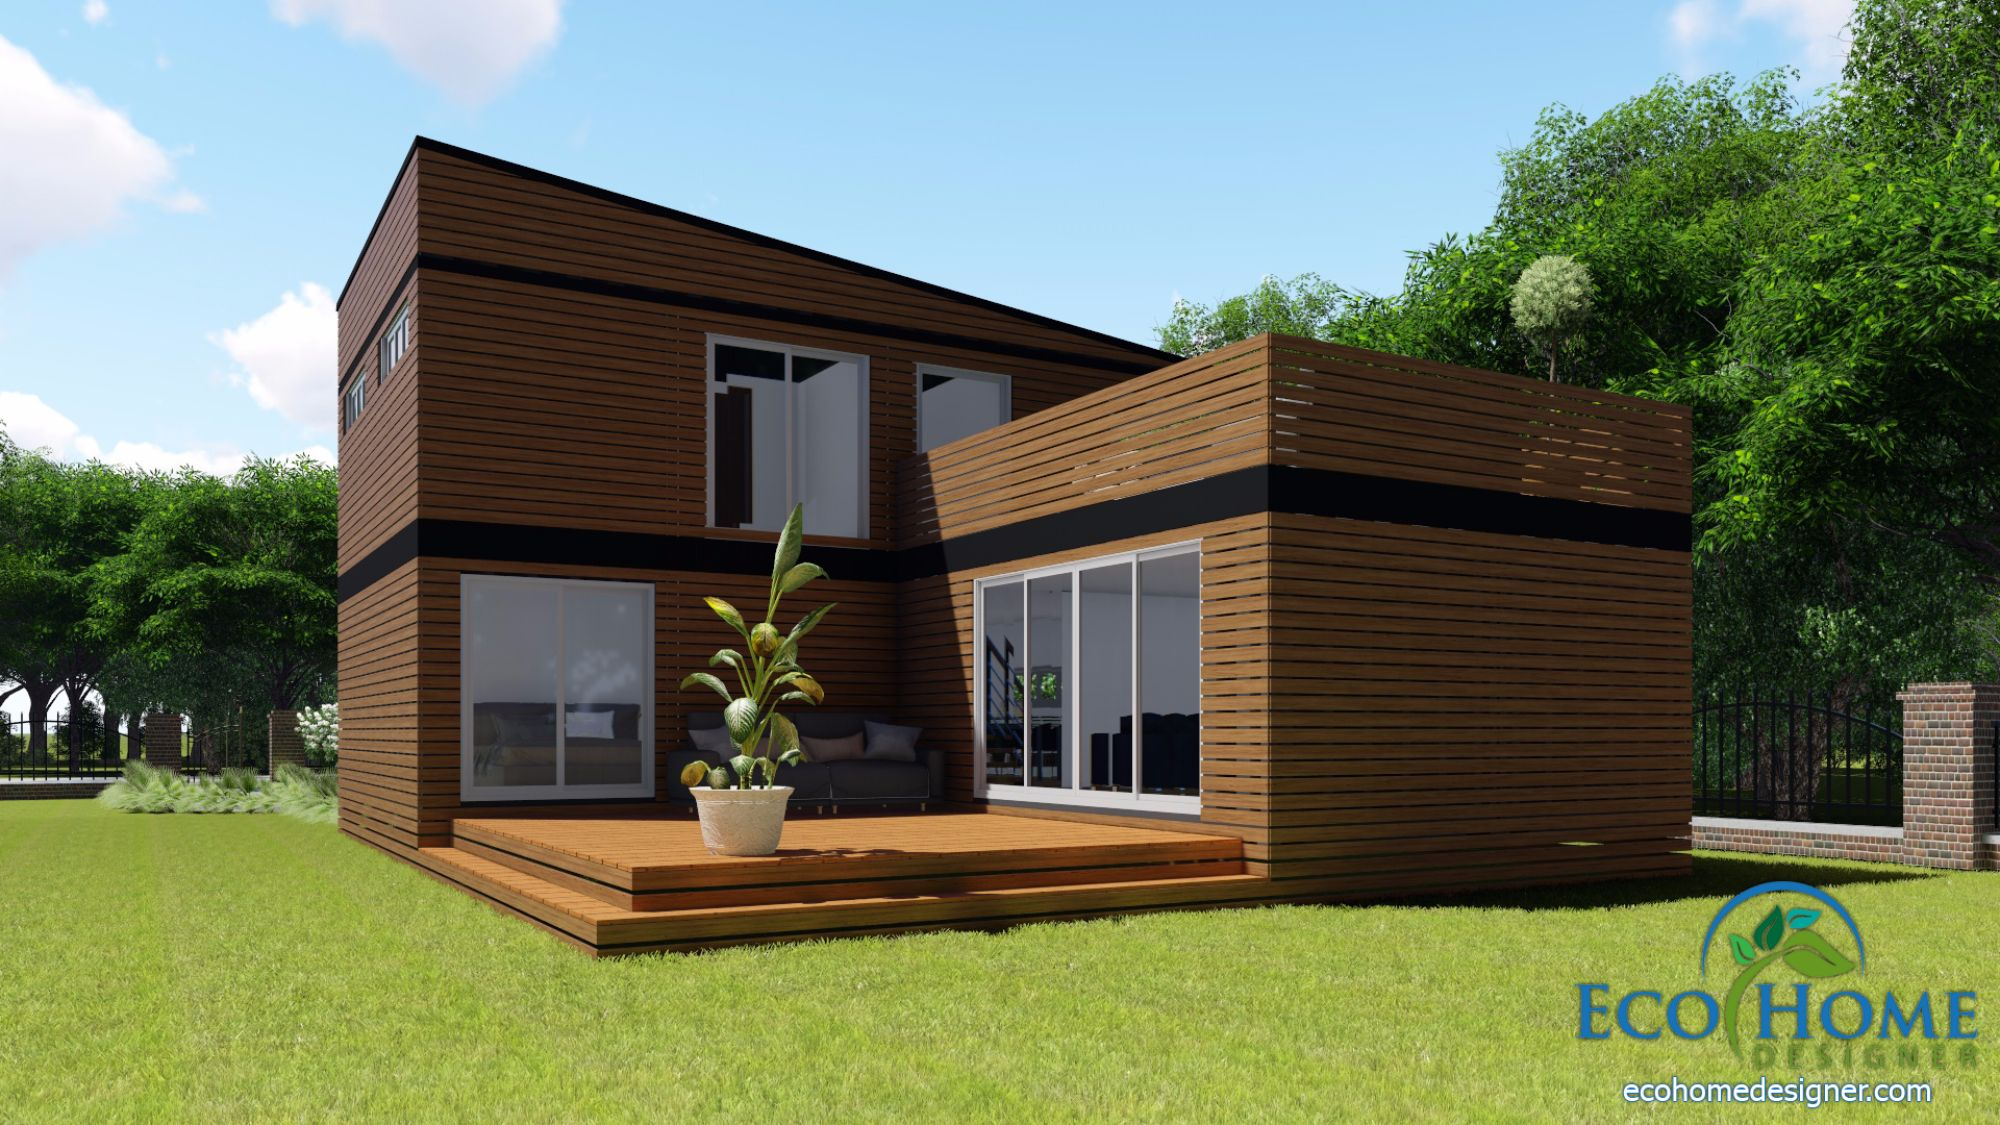 sch17 10 x 20ft 2 story container home plans - Container Home Designer